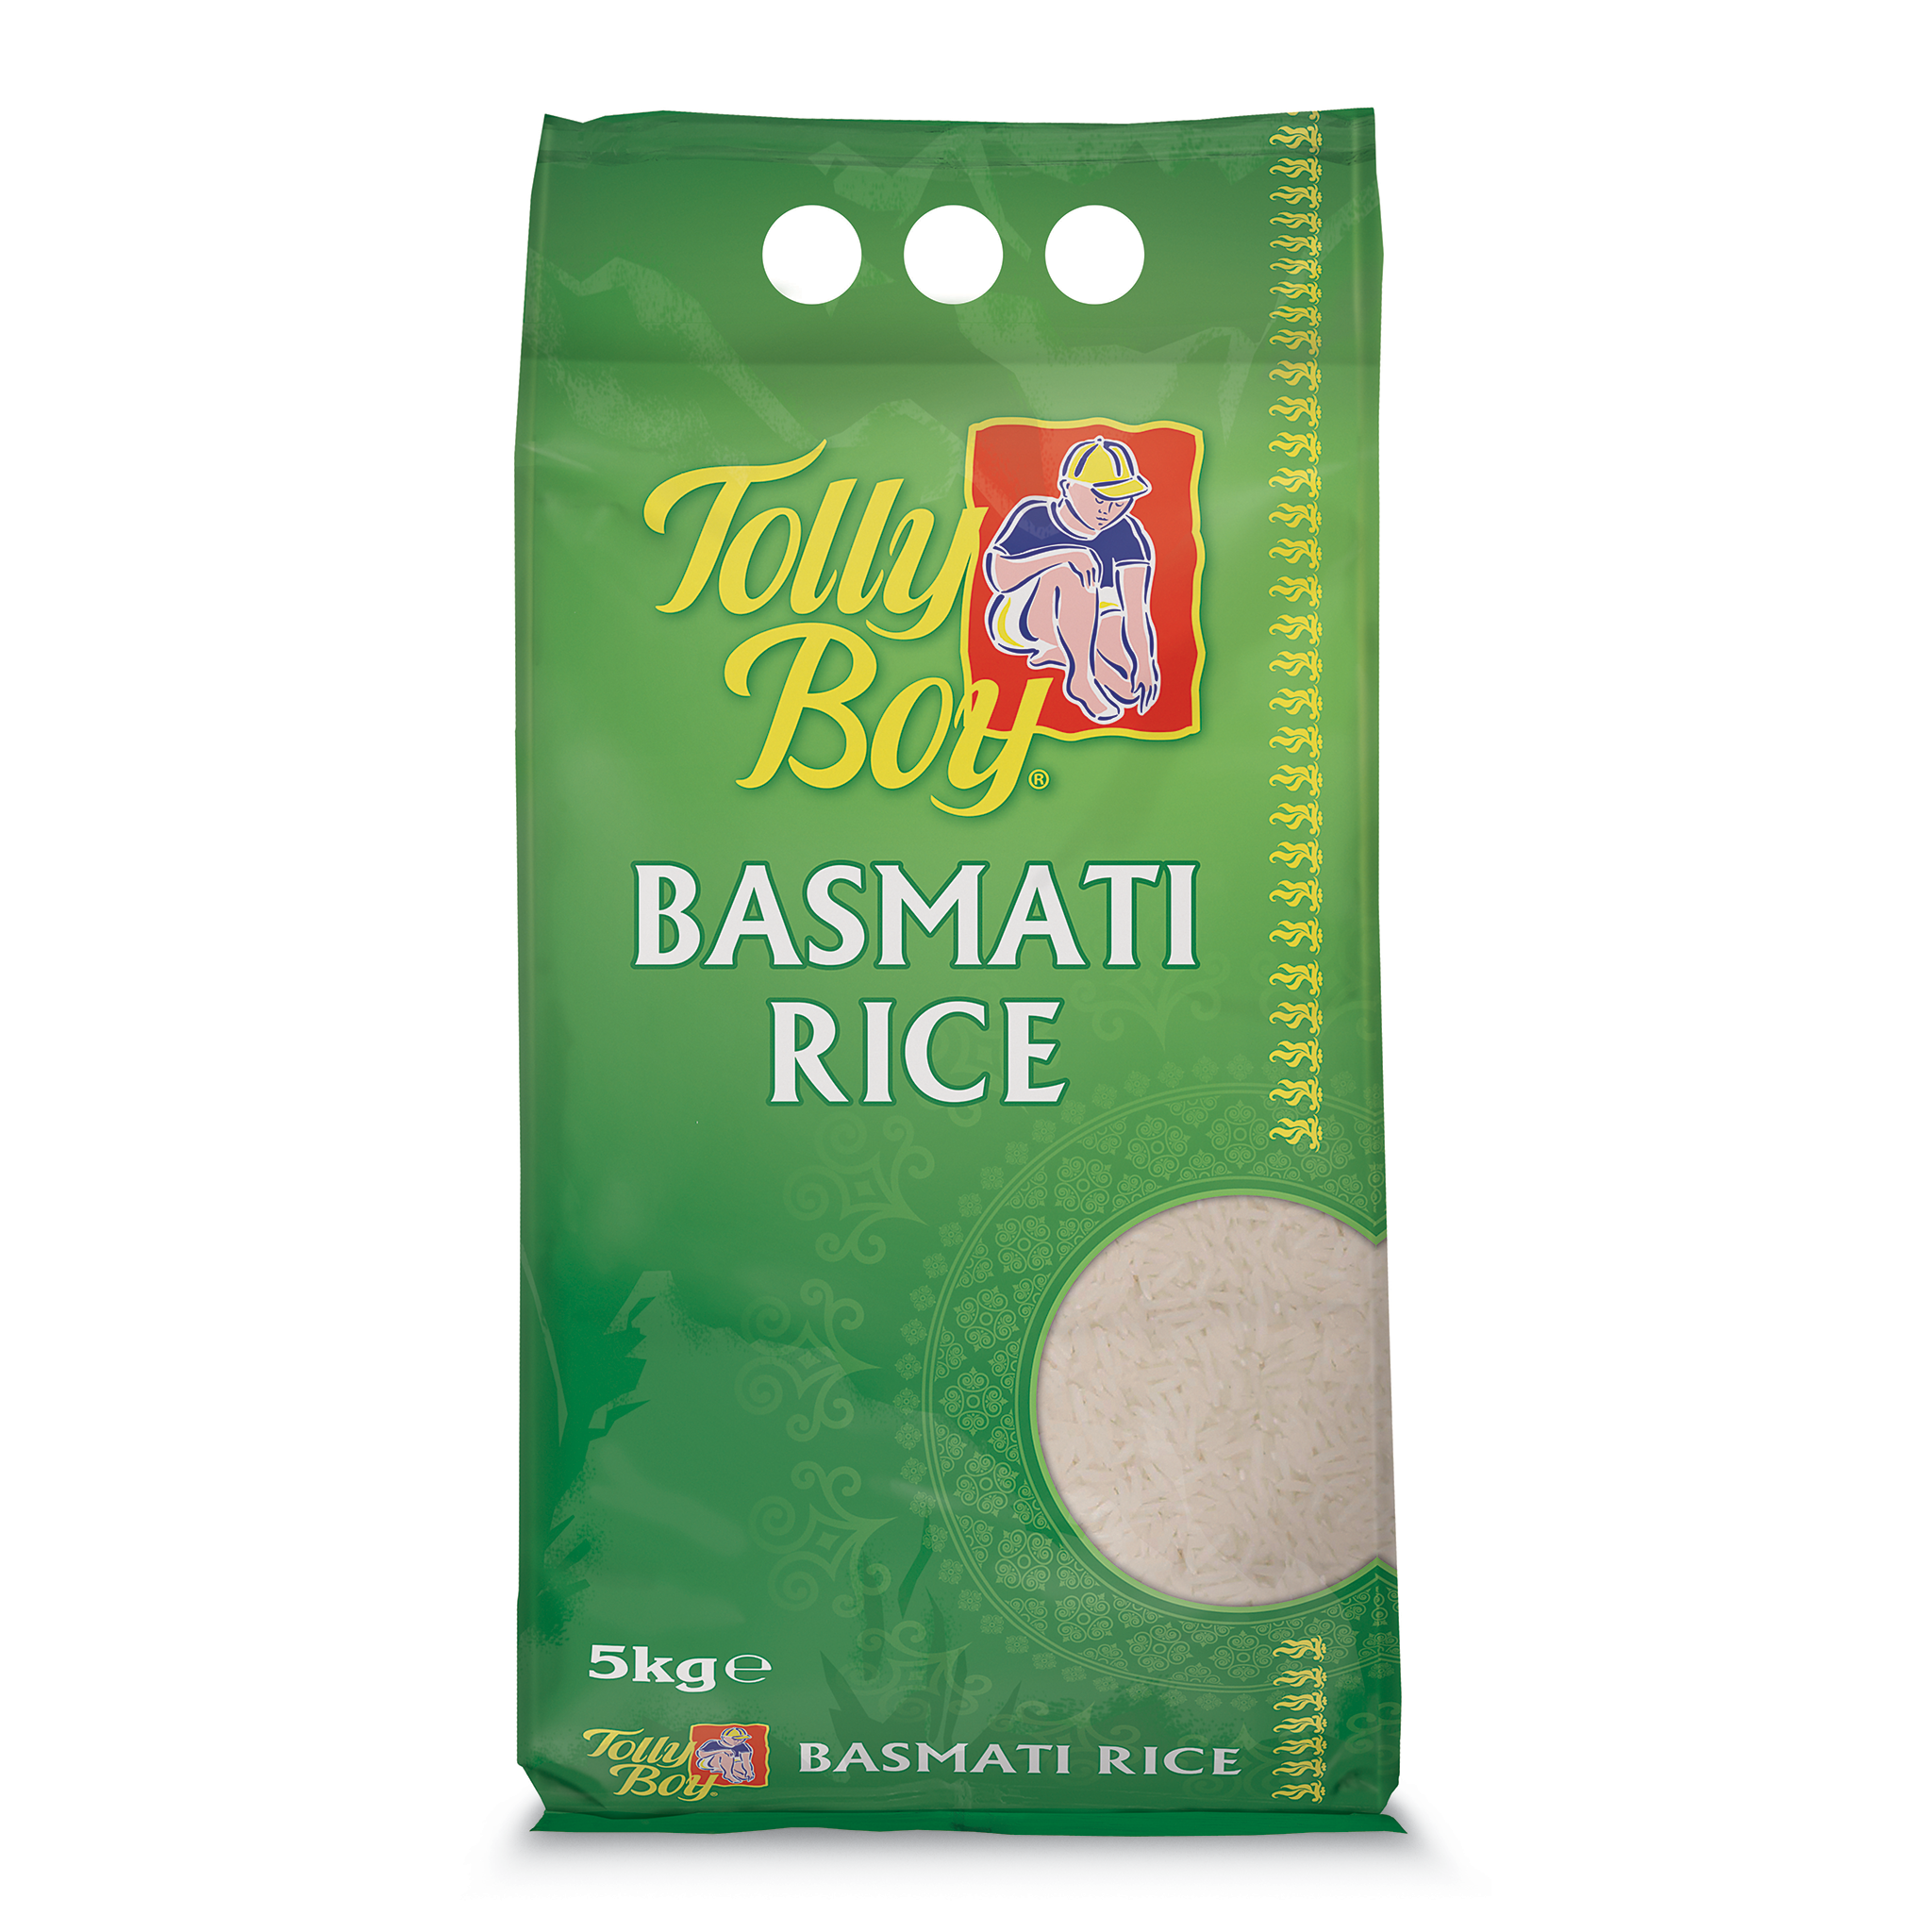 Basmati Rice 5kg by Tolly Boy